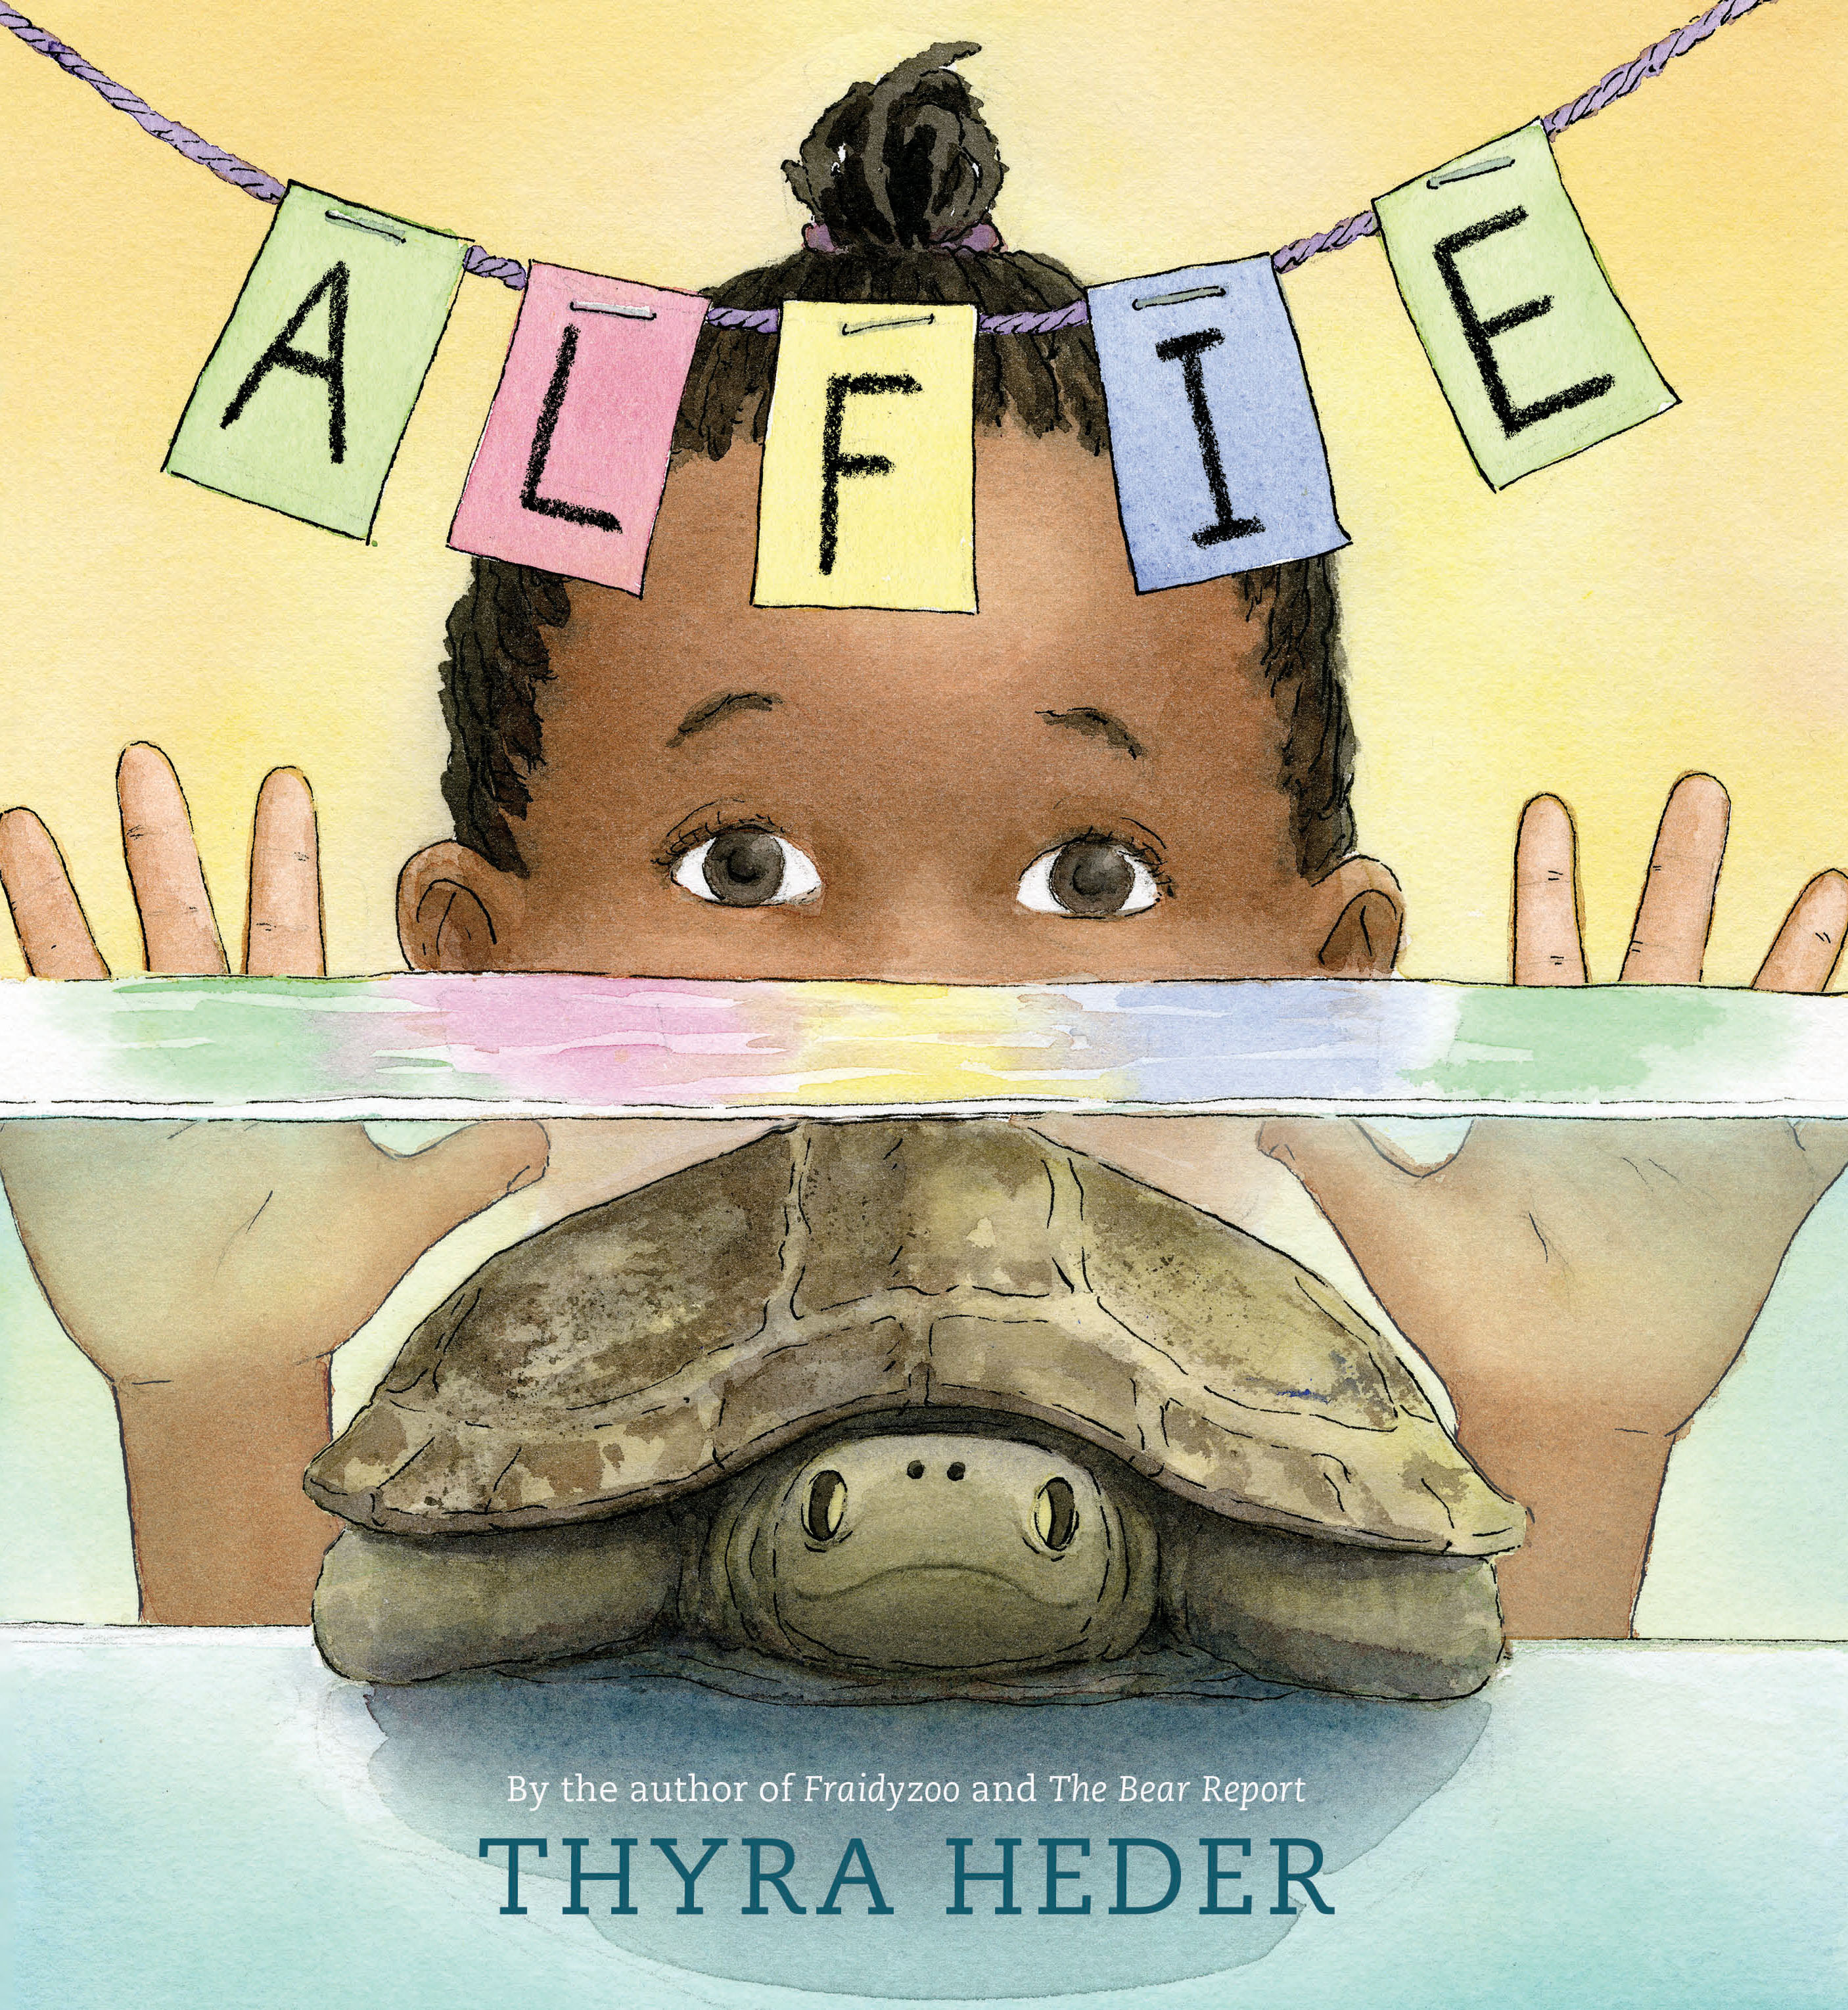 Sunday Story Time with Thyra Heder (Author & Illustrator of Alfie)